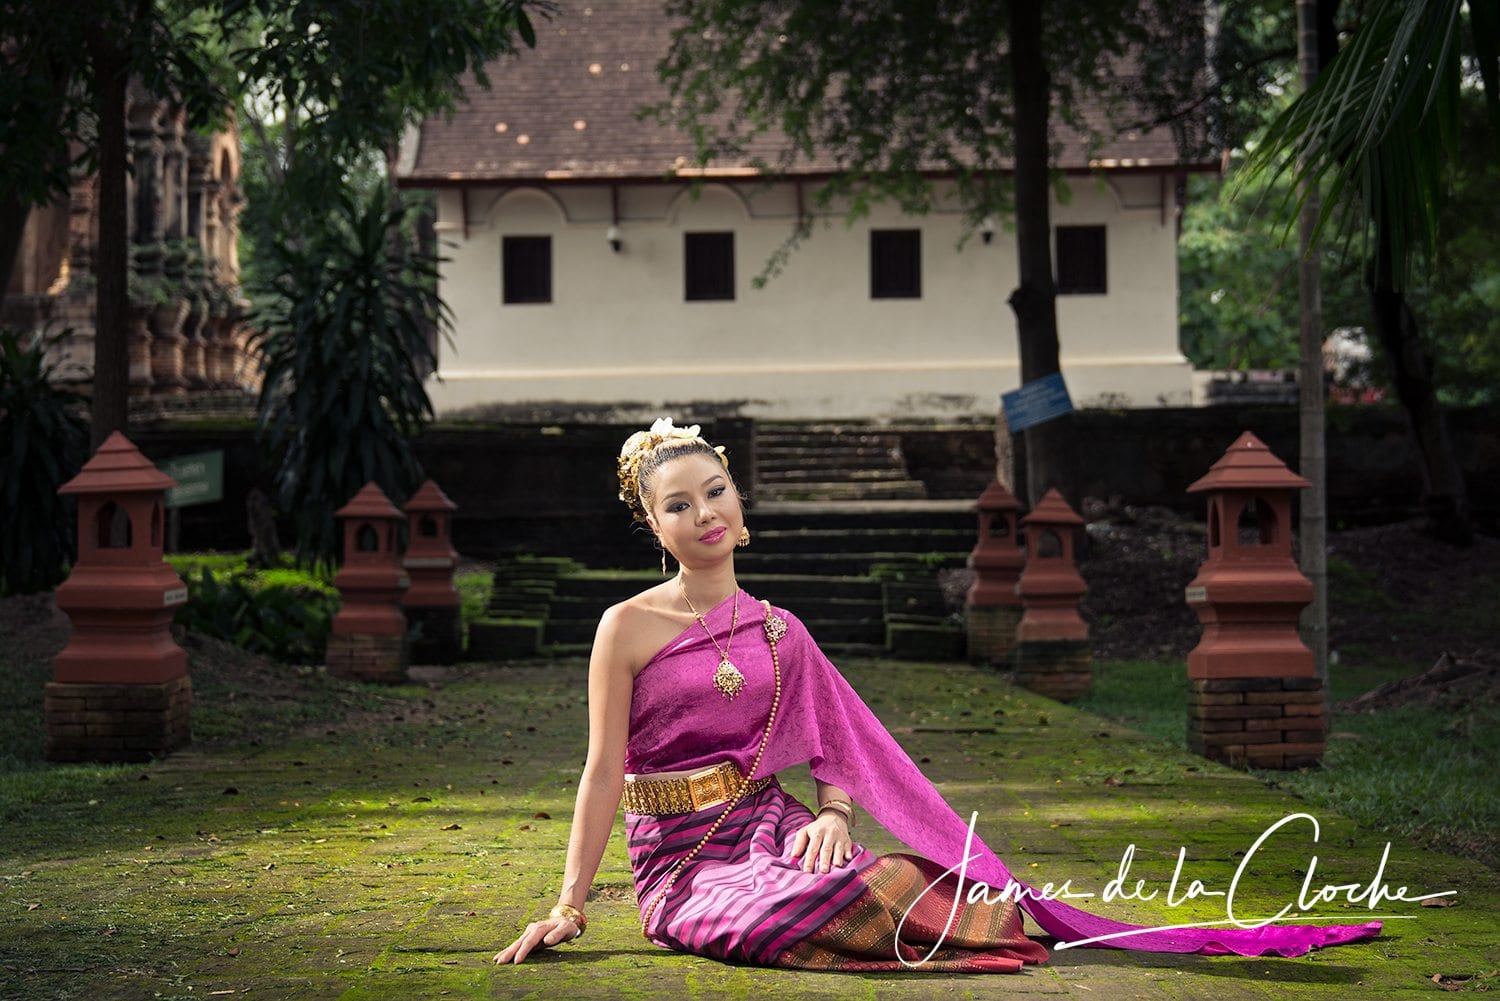 Chiang Mai Souvenir Photo Tours